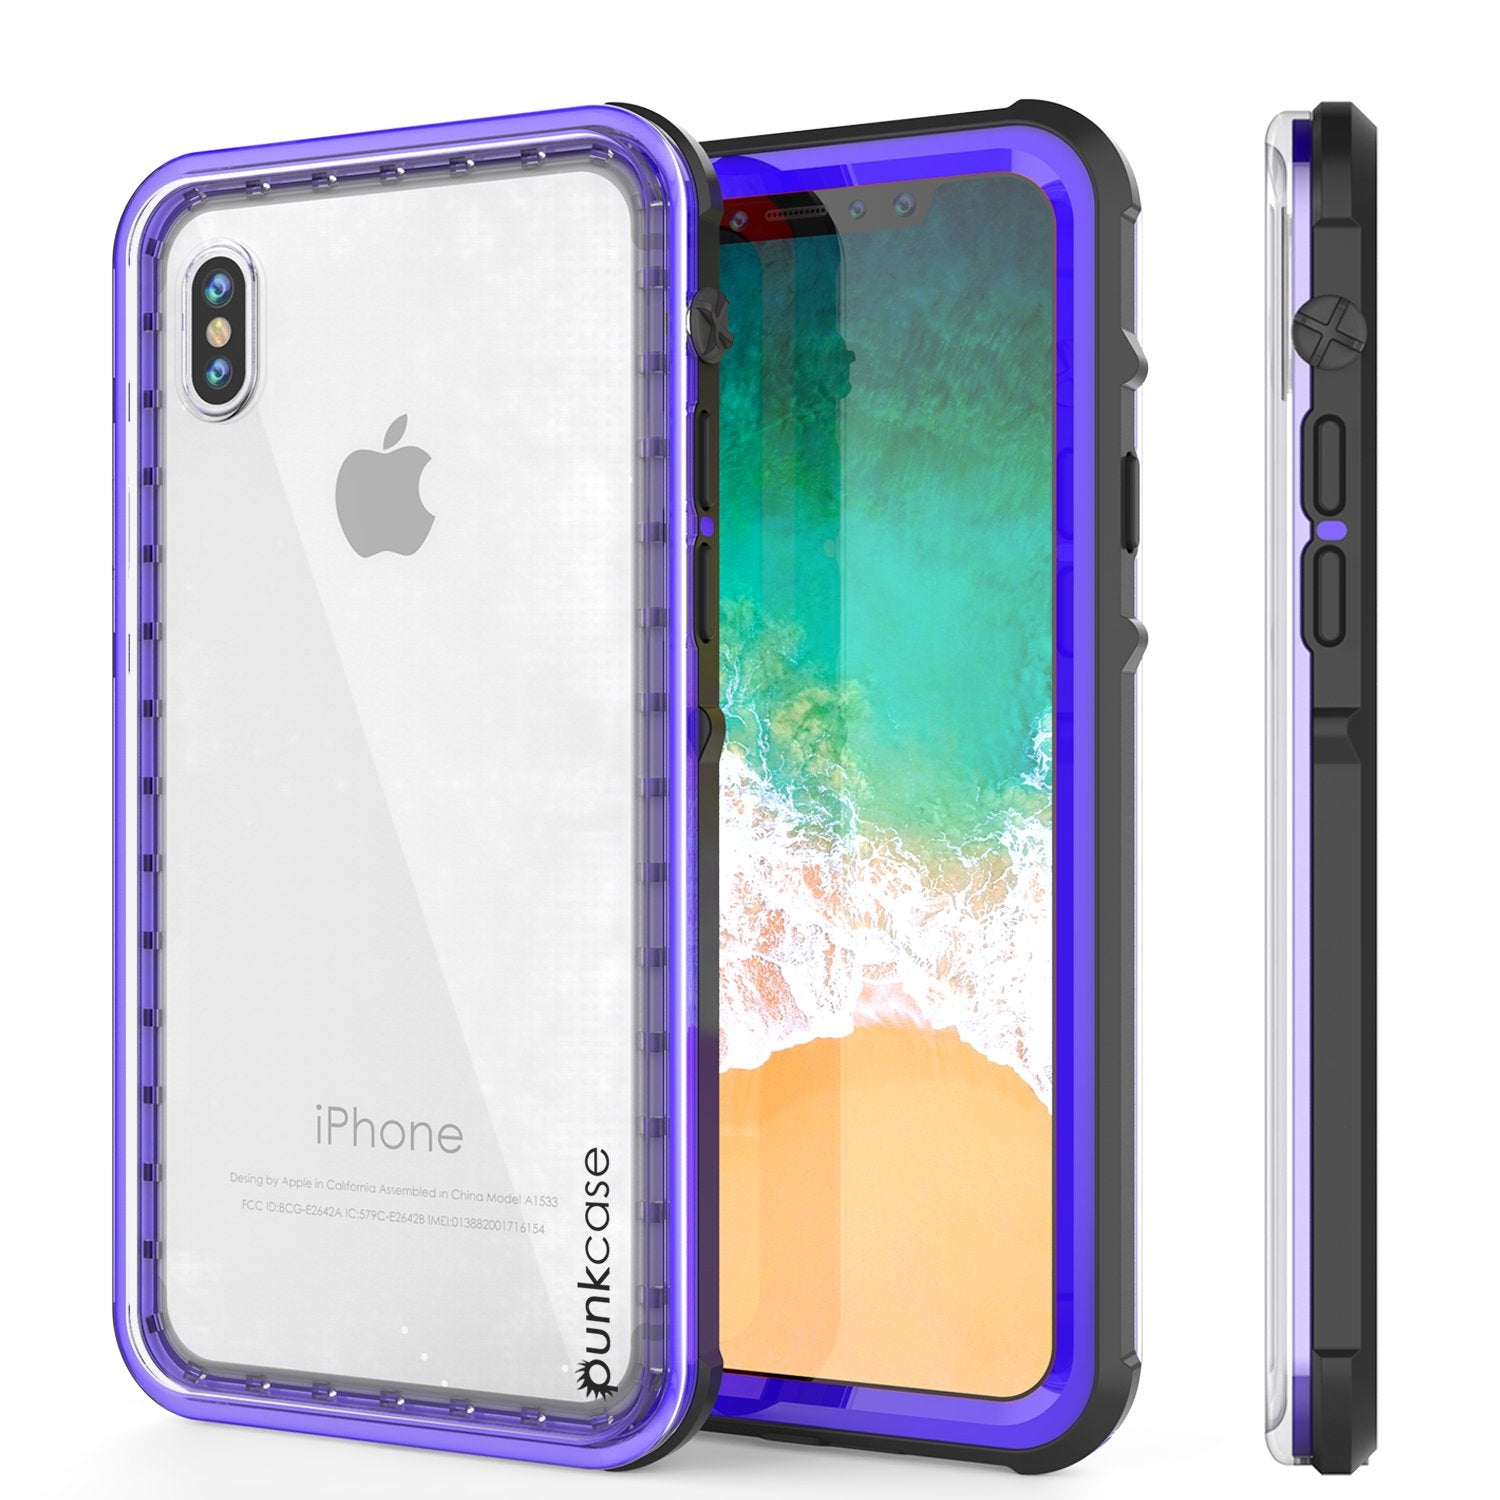 iPhone X Case, PUNKCase [CRYSTAL SERIES] Protective IP68 Certified Cover W/ Attached Screen Protector - DustPROOF, ShockPROOF, SnowPROOF - Ultra Slim Fit for Apple iPhone 10 [PURPLE]